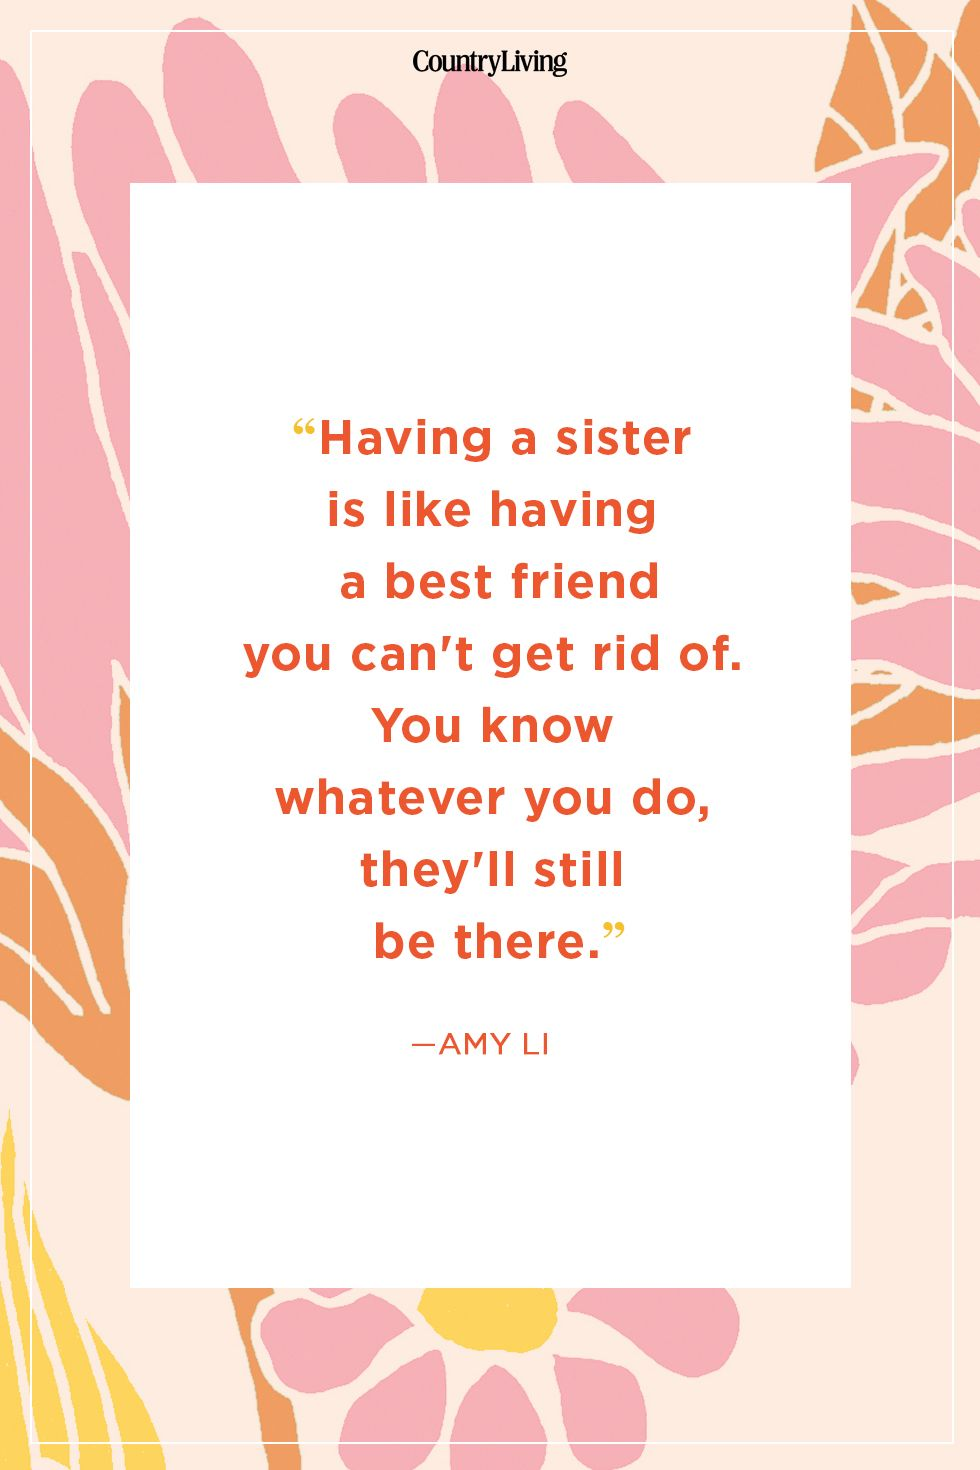 amy lisister quote